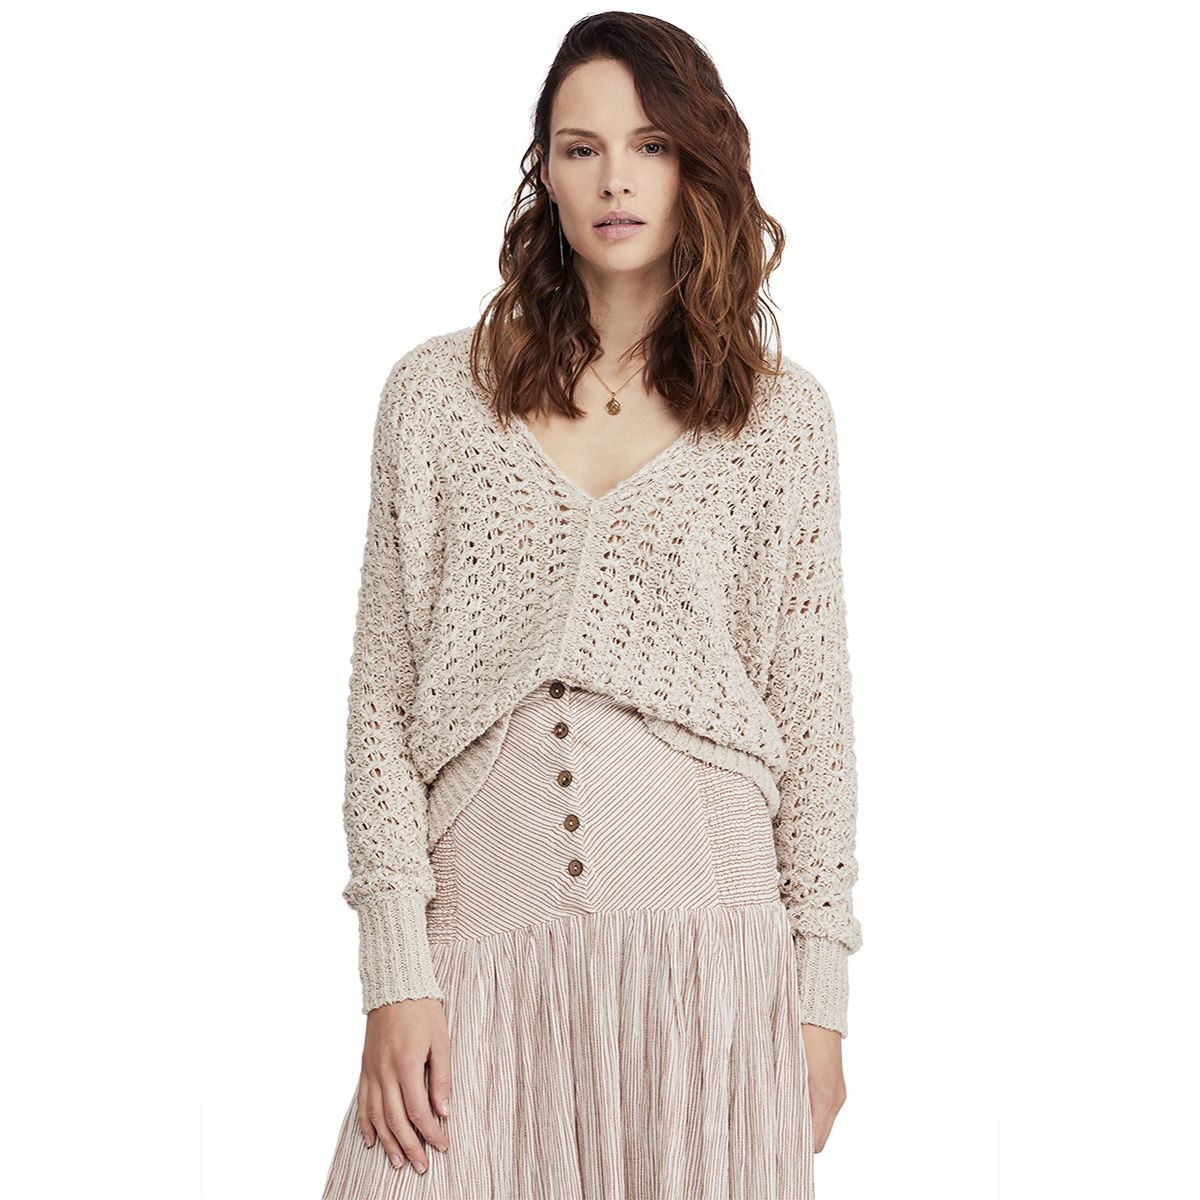 2347d90ce650f Free People Clothing - Womens Apparel - Macy s